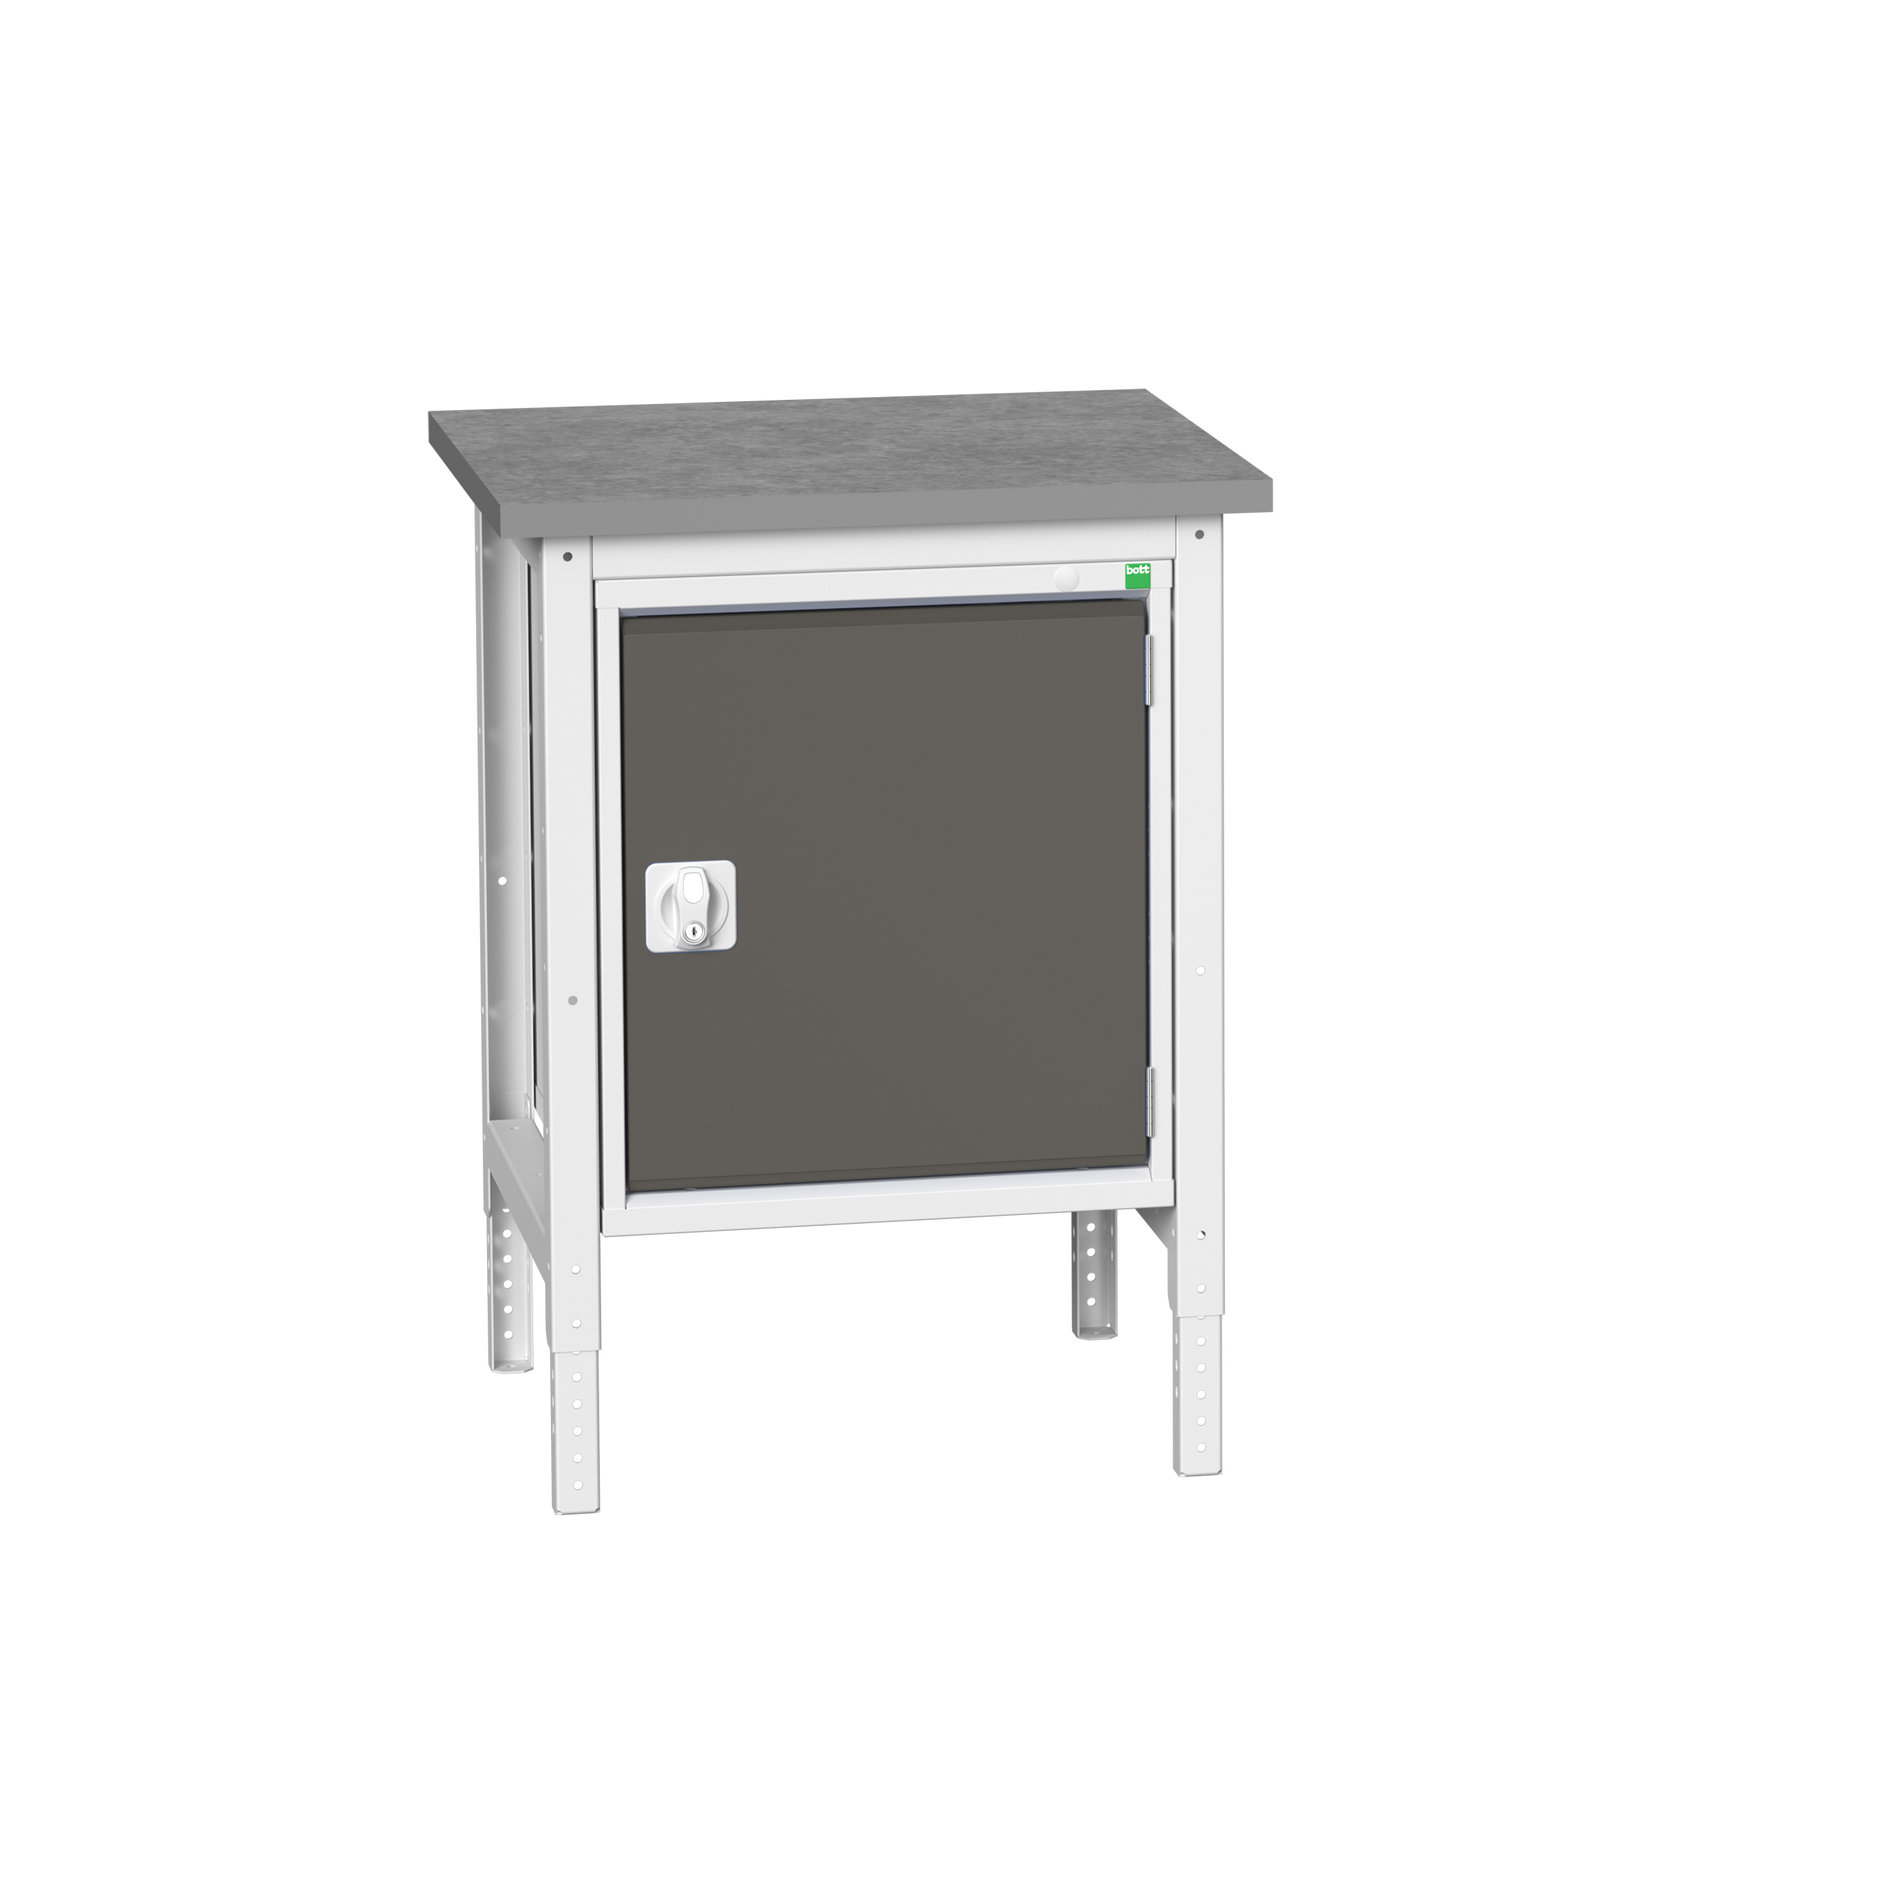 Bott Verso Adjustable Height Workstand With Full Cupboard